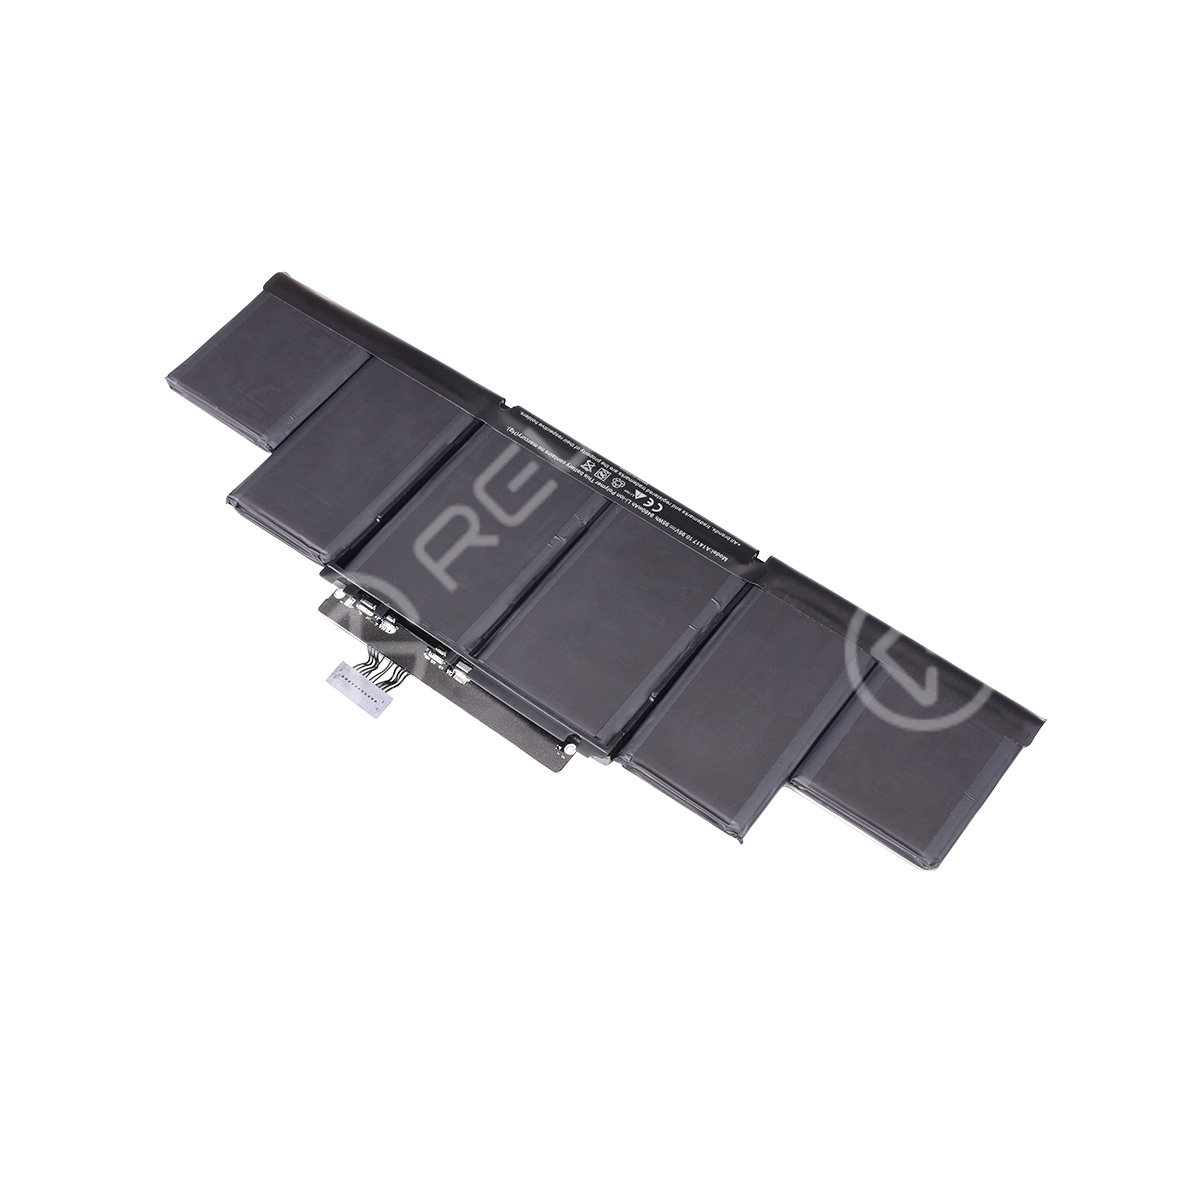 Battery A1417 Compatible For Macbook Pro RETINA 15 inch A1398(MID 2012 - EARLY 2013)